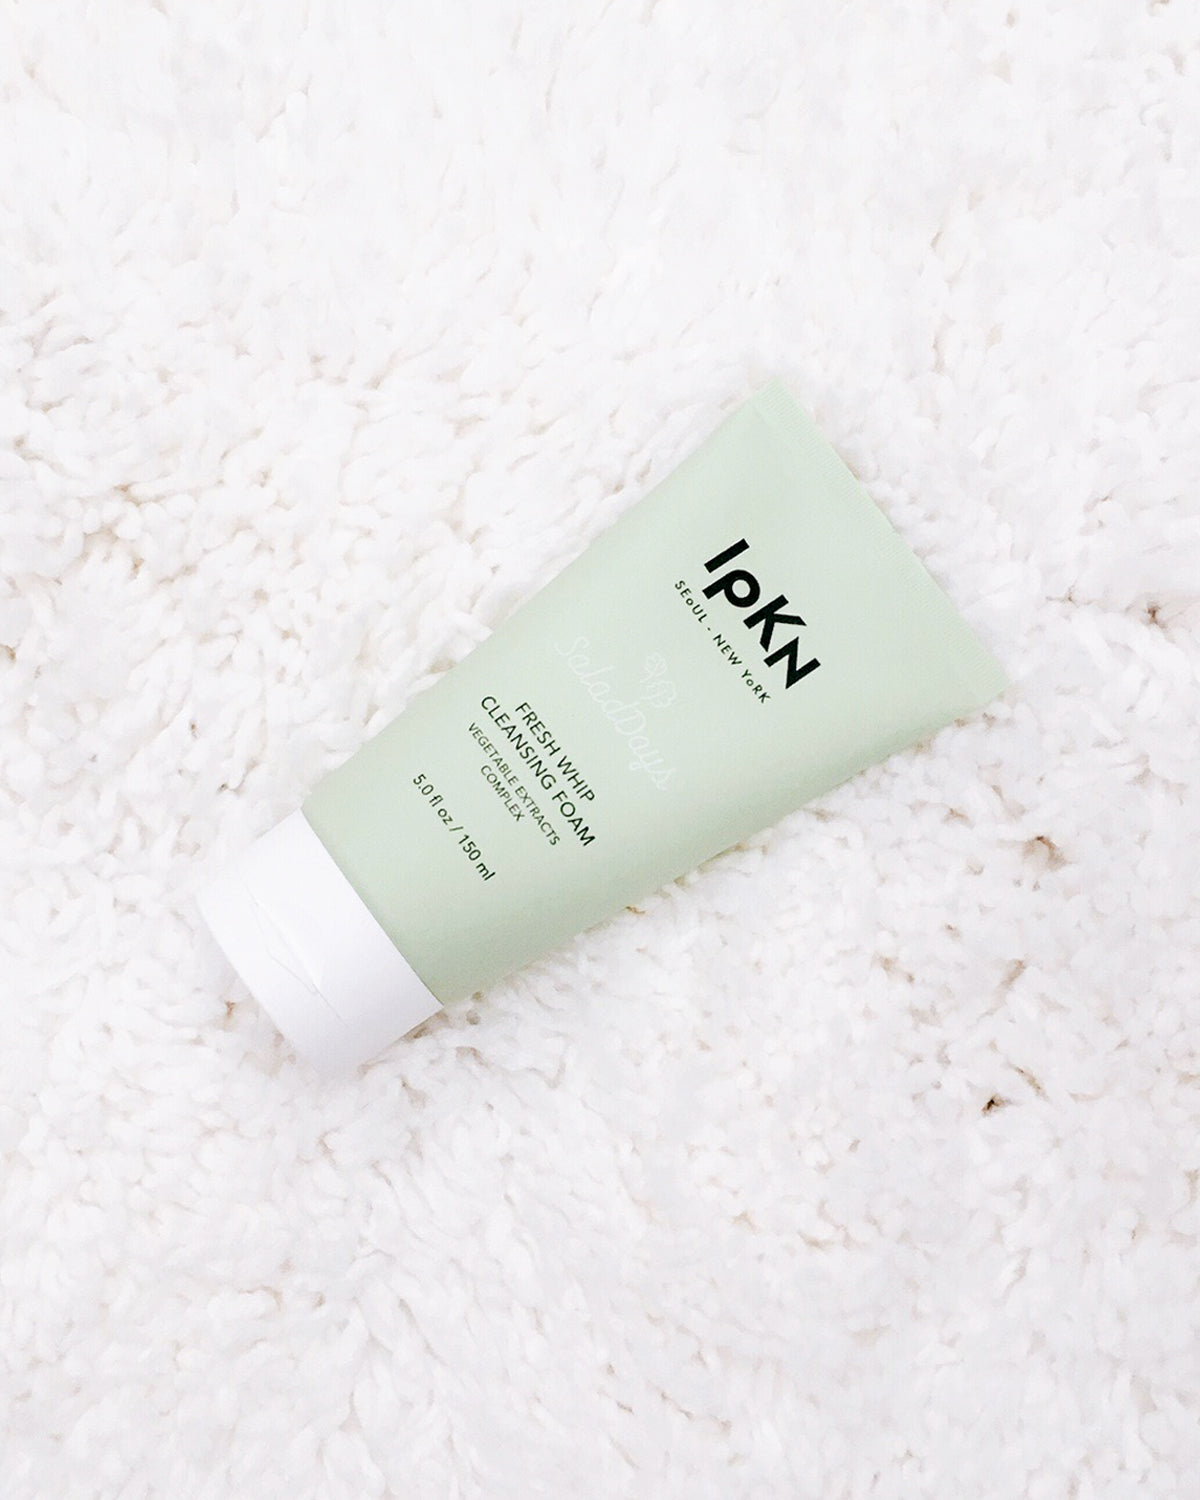 Salad Days!  A vitamin-enriched cleansing foam deeply cleanses and removes makeup, toxins, and impurities from the skin both day & night while hydrating the skin. Vegetable particles such as Kale and Whet help improve the appearance of skin elasticity and hydration for younger looking skin!